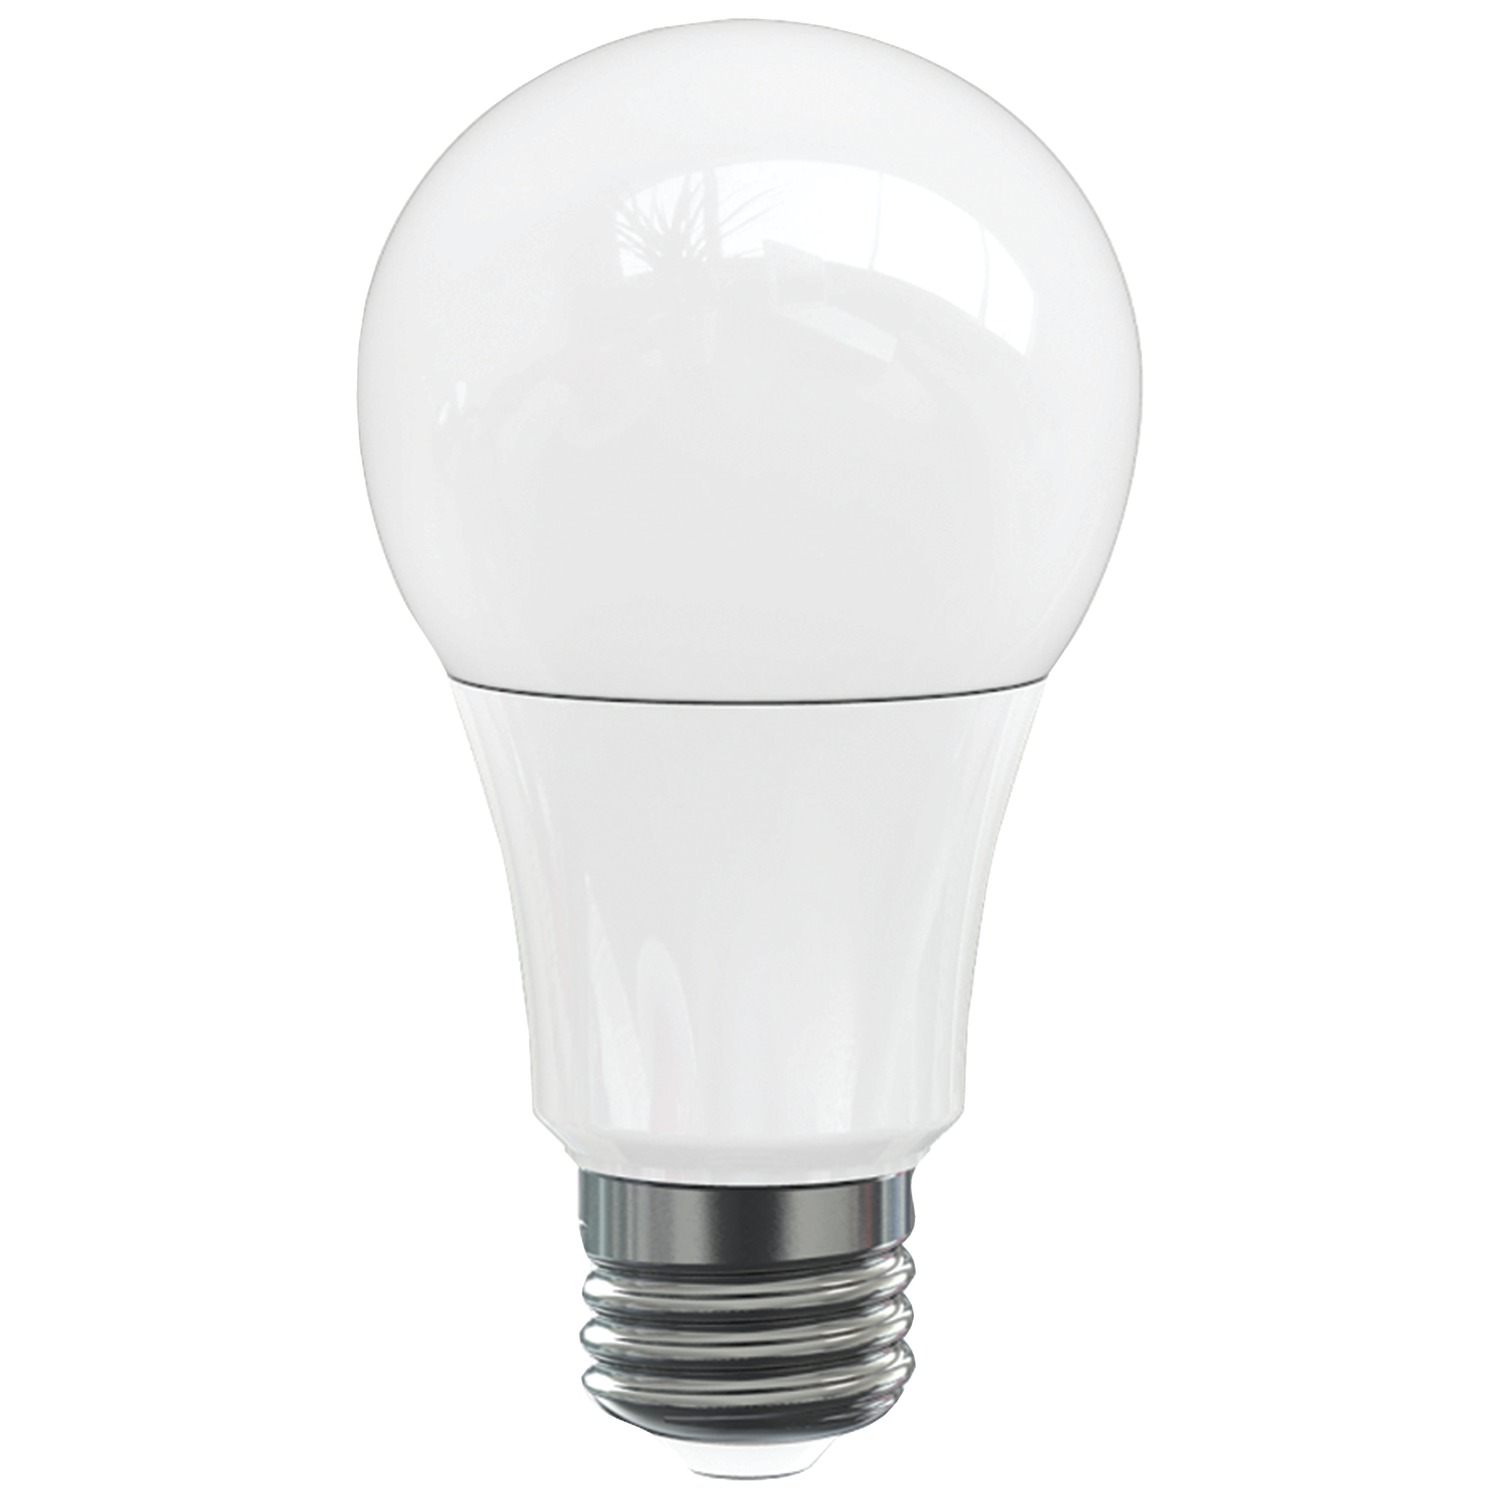 9 Watt Led Sleek Lighting 20951 9 Watt Dimmable Led Light Bulb